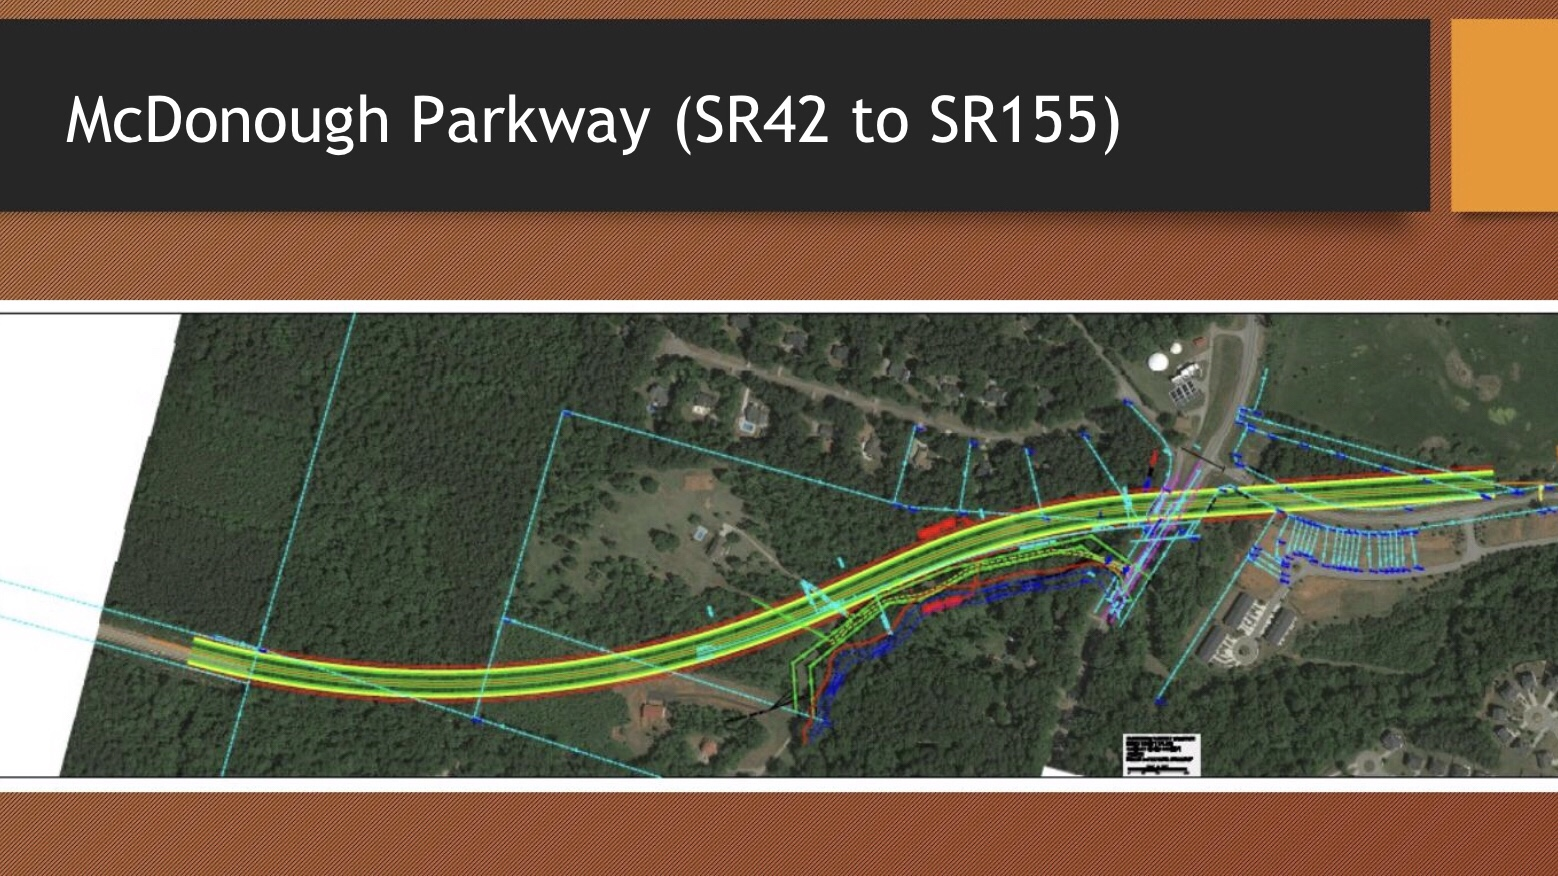 Concept design for McDonough Parkway between SR 42 and SR 155